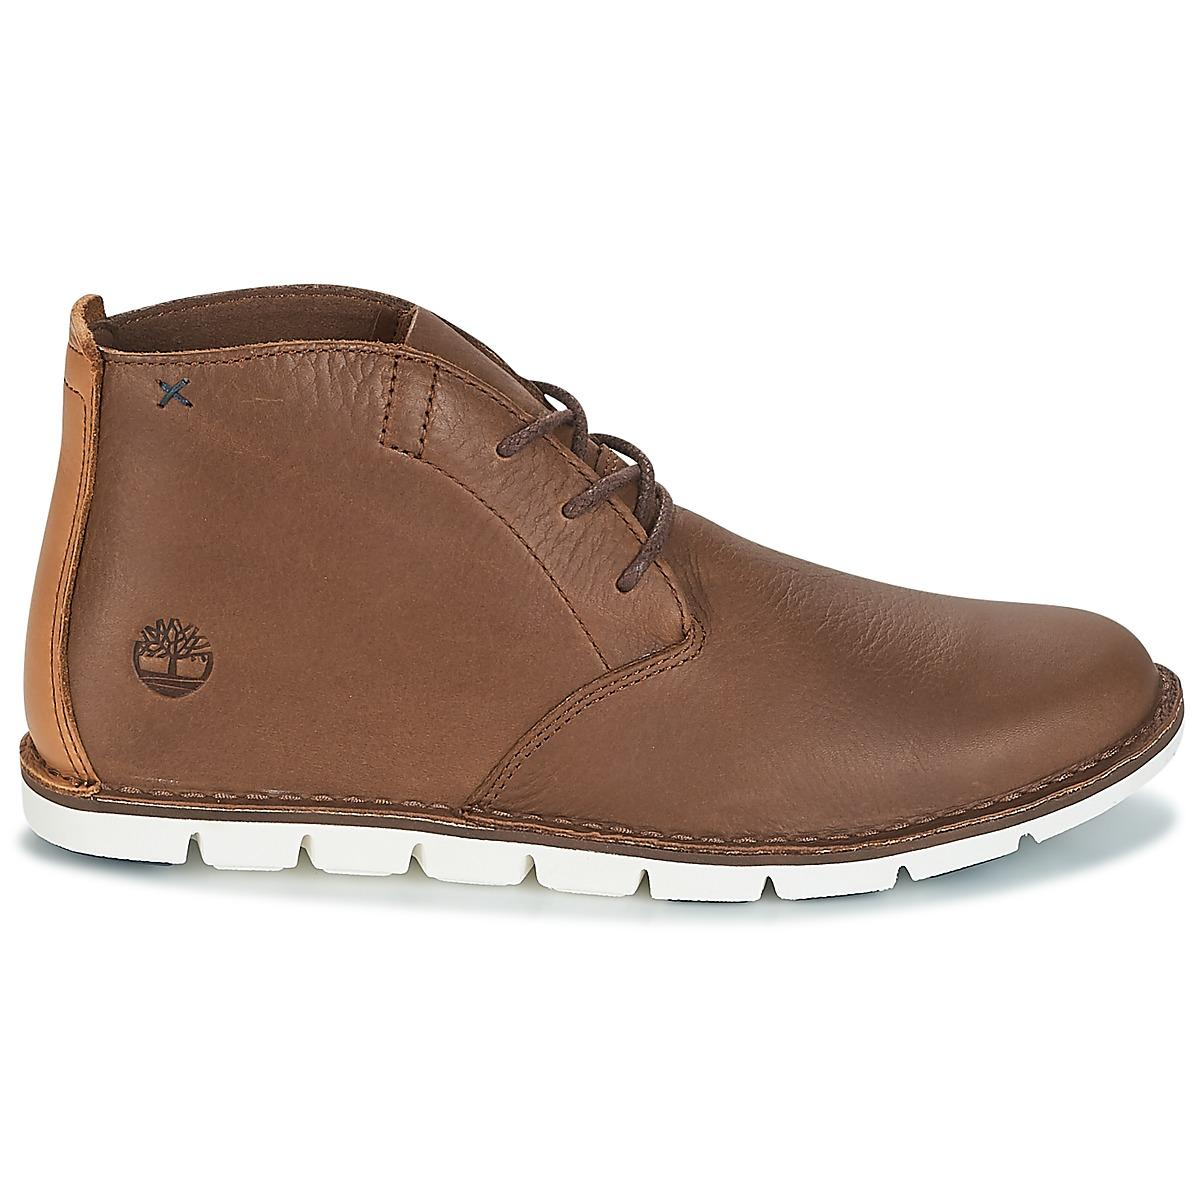 684ad102df34 Timberland Tidelands Desert Boot Men s Mid Boots In Brown in Brown ...